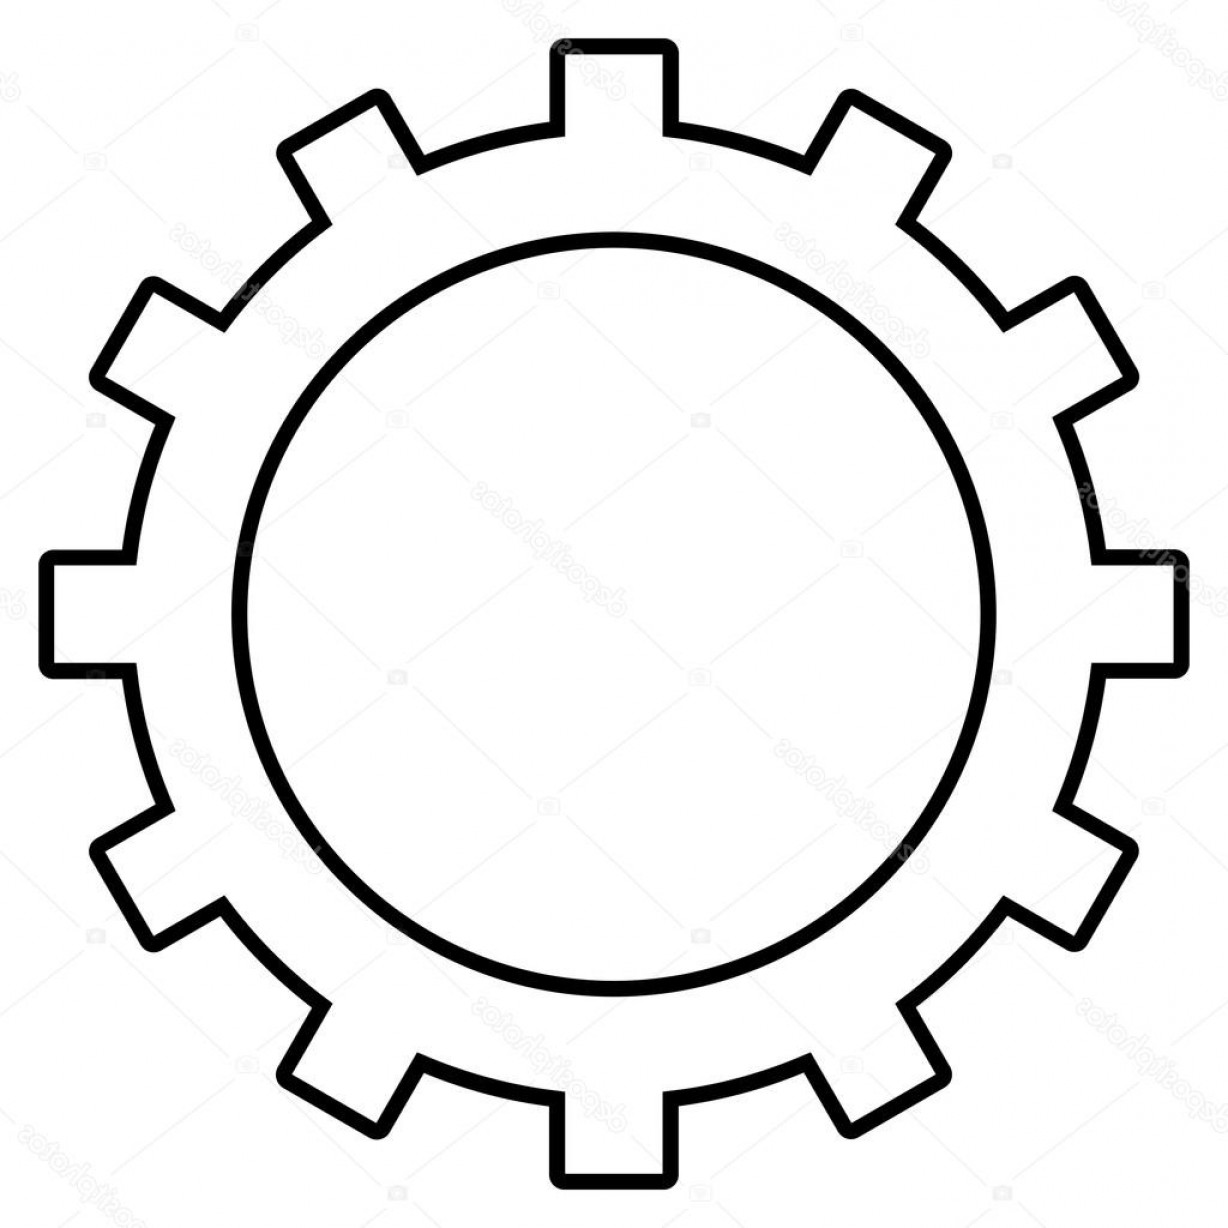 Vector Gear Graphics: Stock Illustration Gear Outline Vector Icon